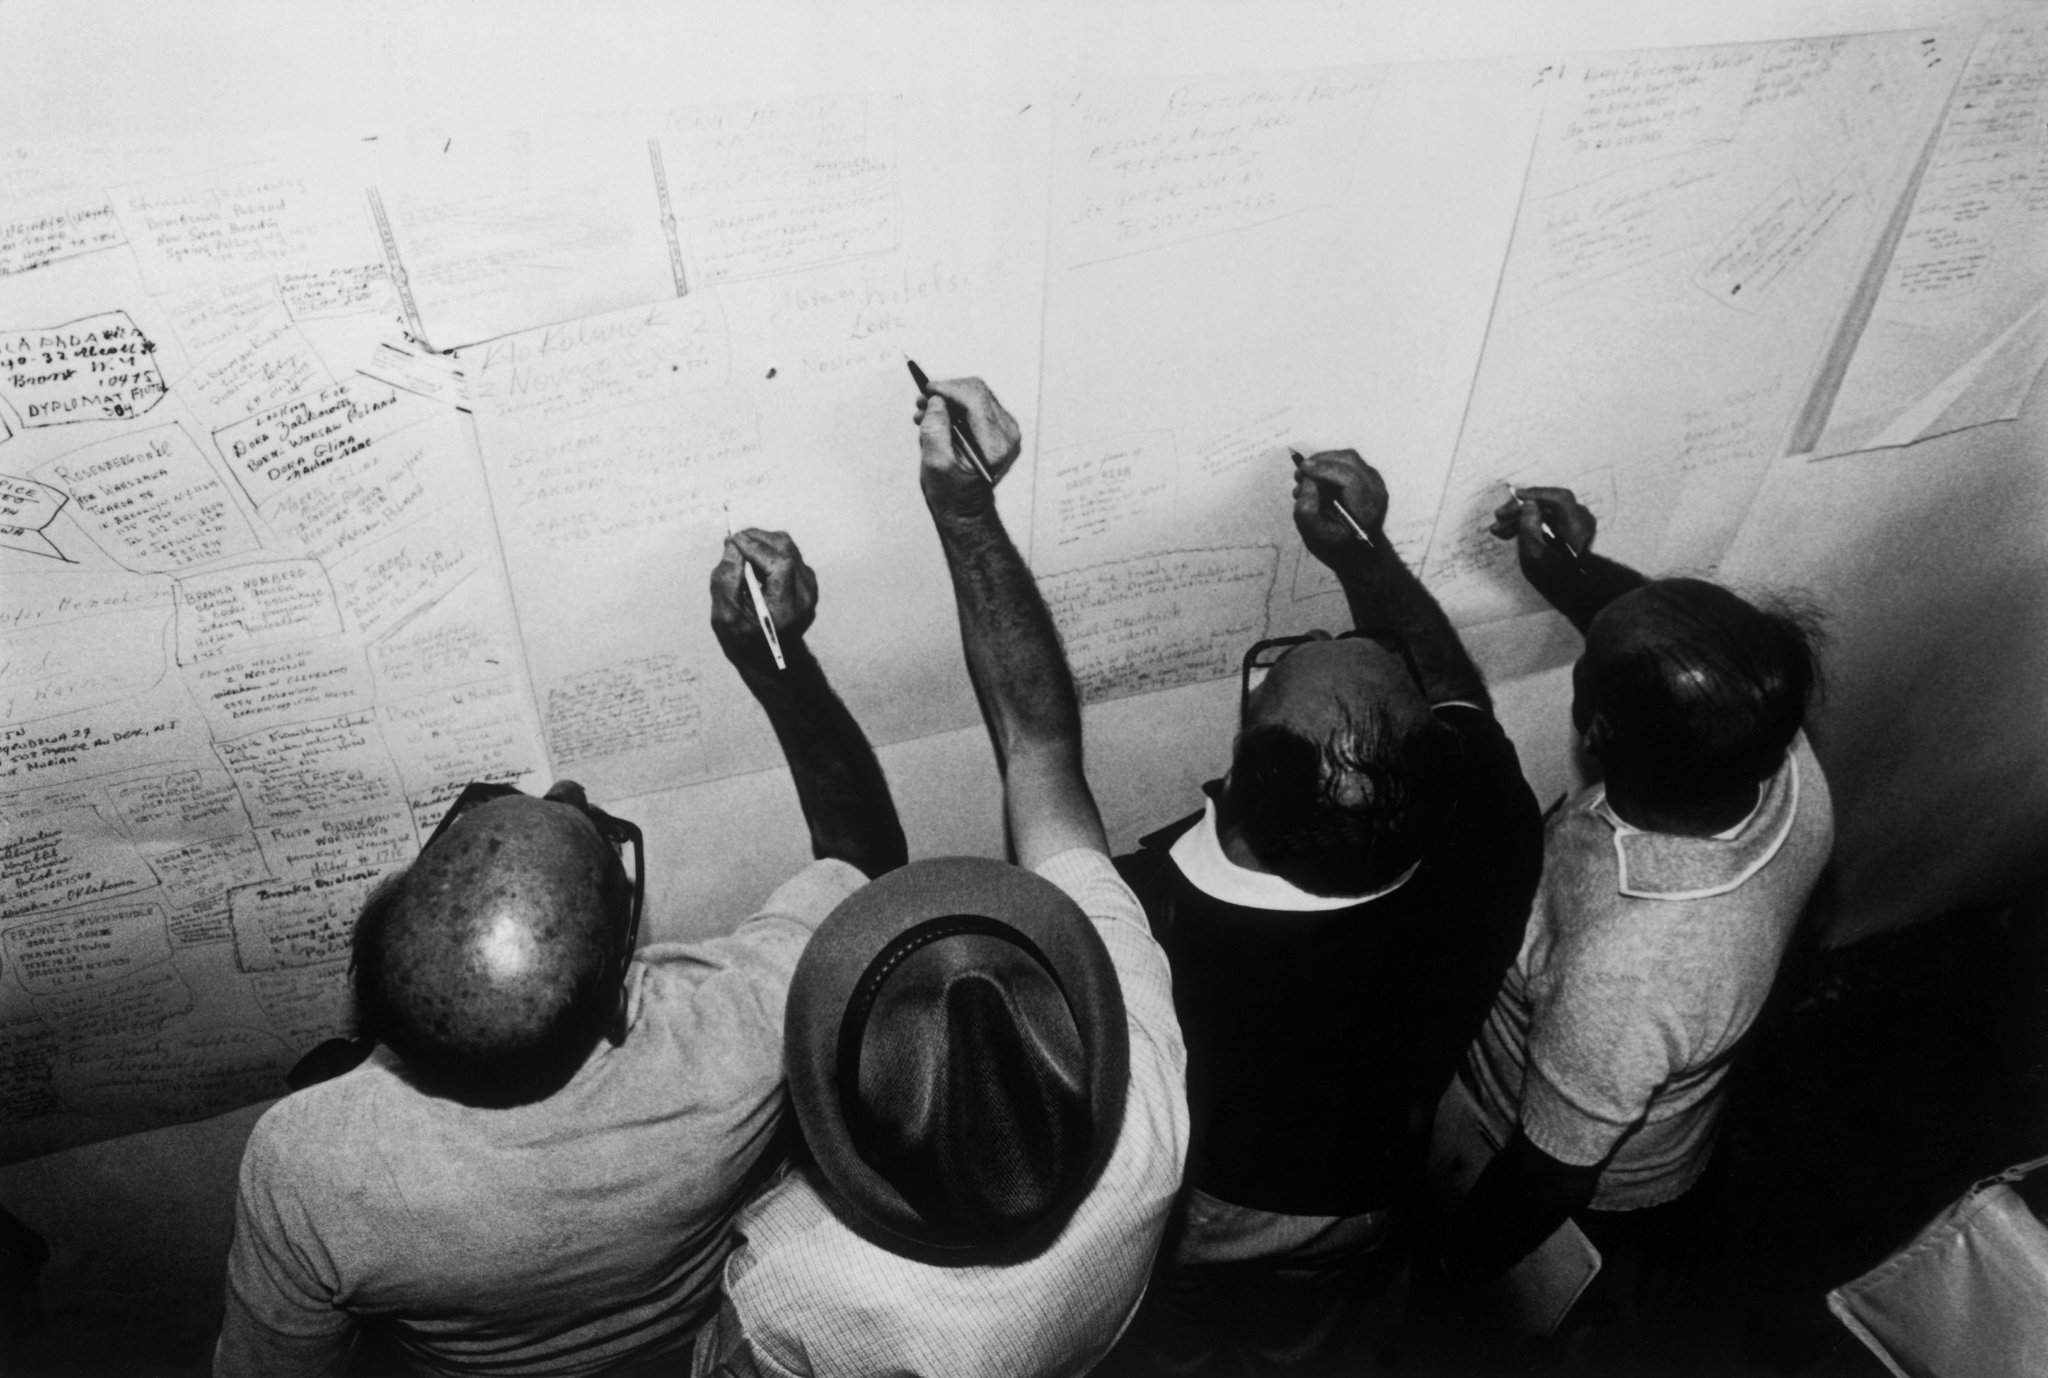 Today marks the anniversary of the liberation of Auschwitz.  Holocaust survivors registering their names. 1981. © #MichaBarAm/#MagnumPhotos https://t.co/OxNGZaACmW